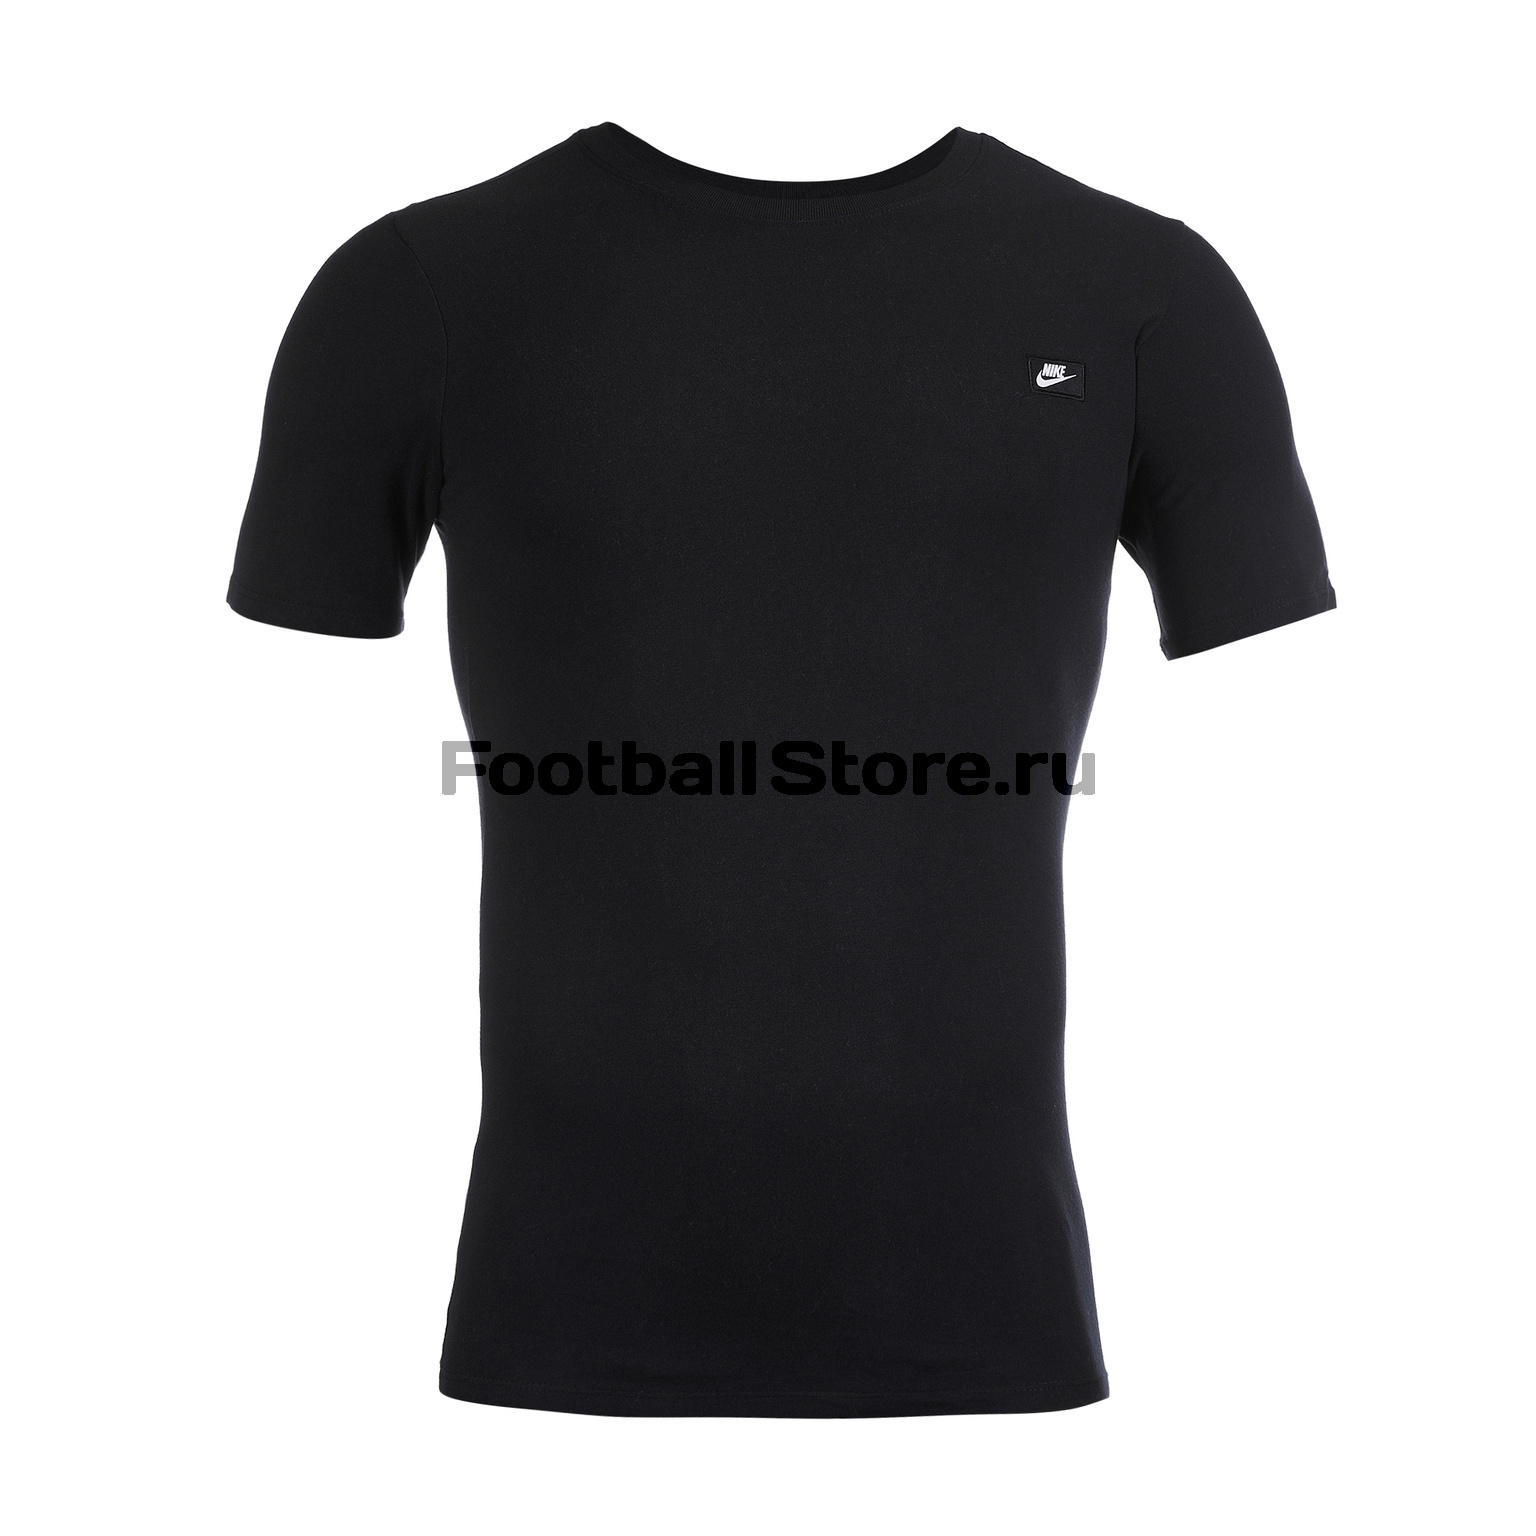 Футболка хлопковая Nike Tee AH7925-010 футболка nike футболка b nsw tee let there be air page 4